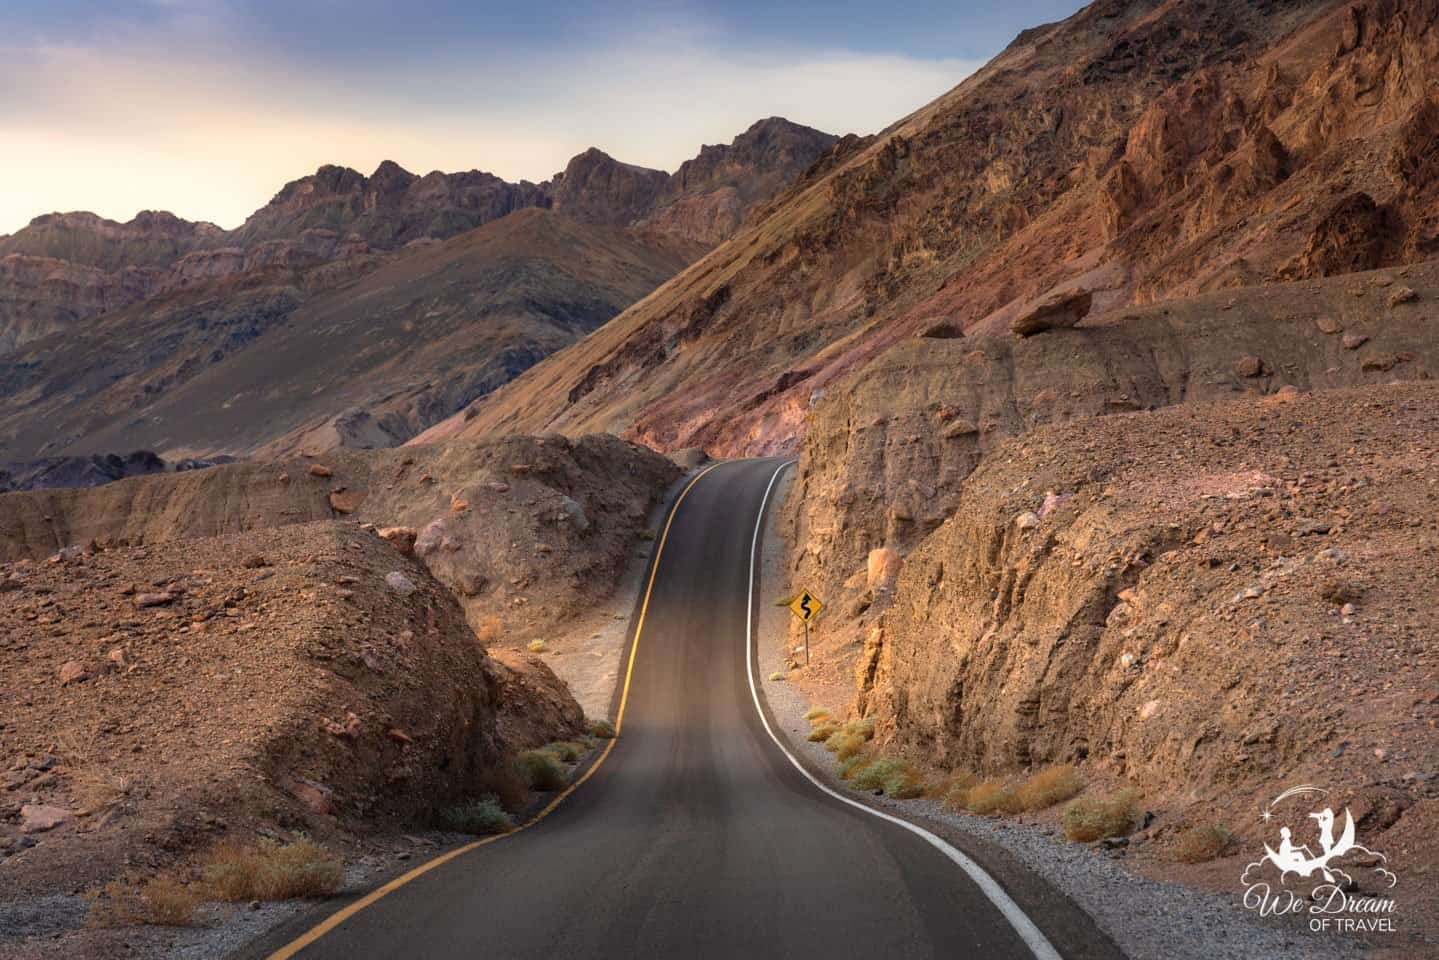 The long and winding roads of Artists Drive deliver you to the incredible color of Artists Palette.